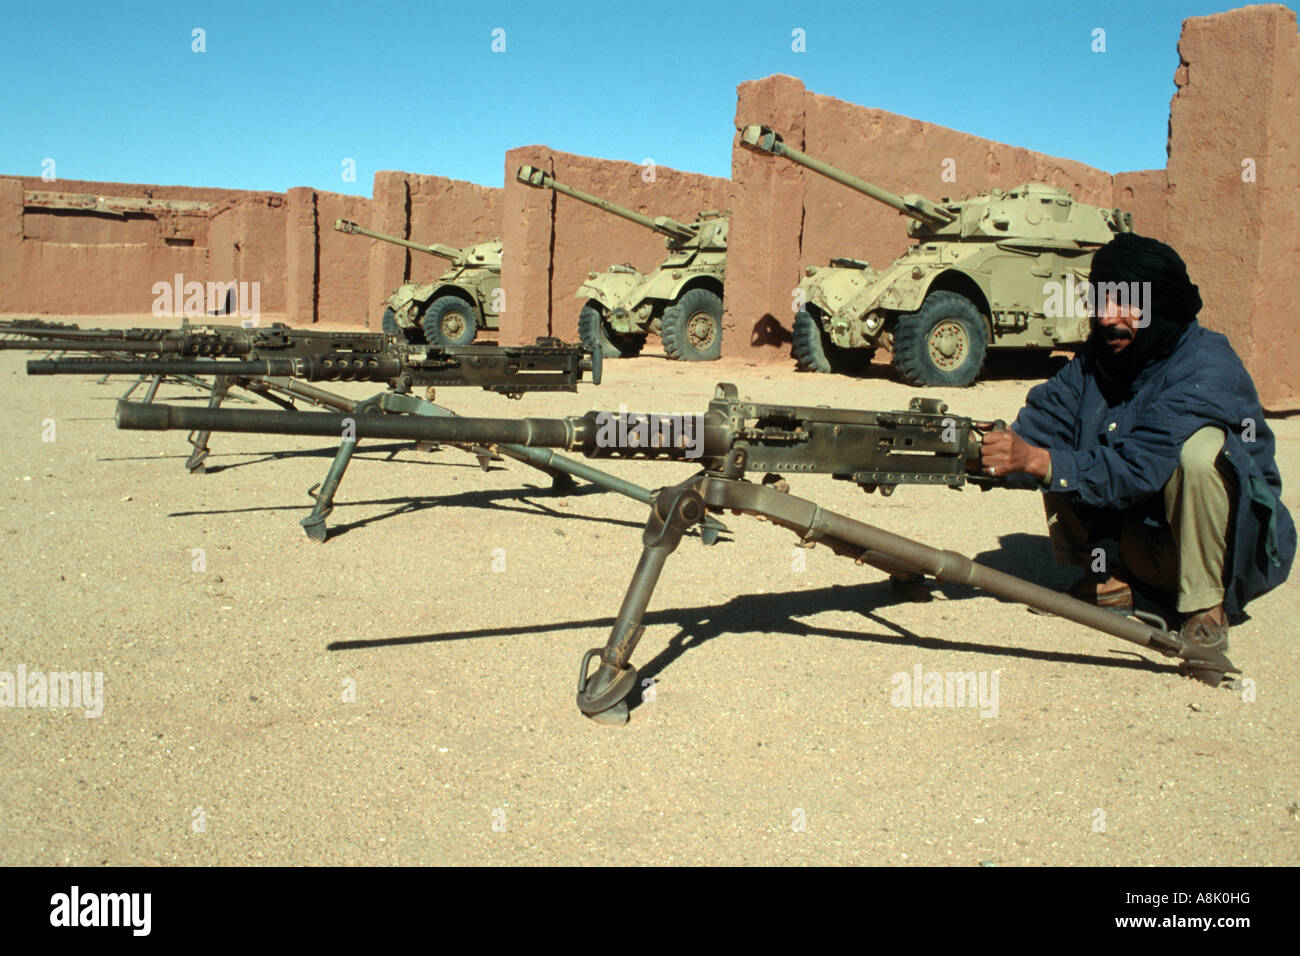 WESTERN SAHARA POLISARIO FIGHTERS TRAINING WITH WEAPONS CAPTURED FROM MORROCCAN ARMY Photo Julio Etchart Stock Photo